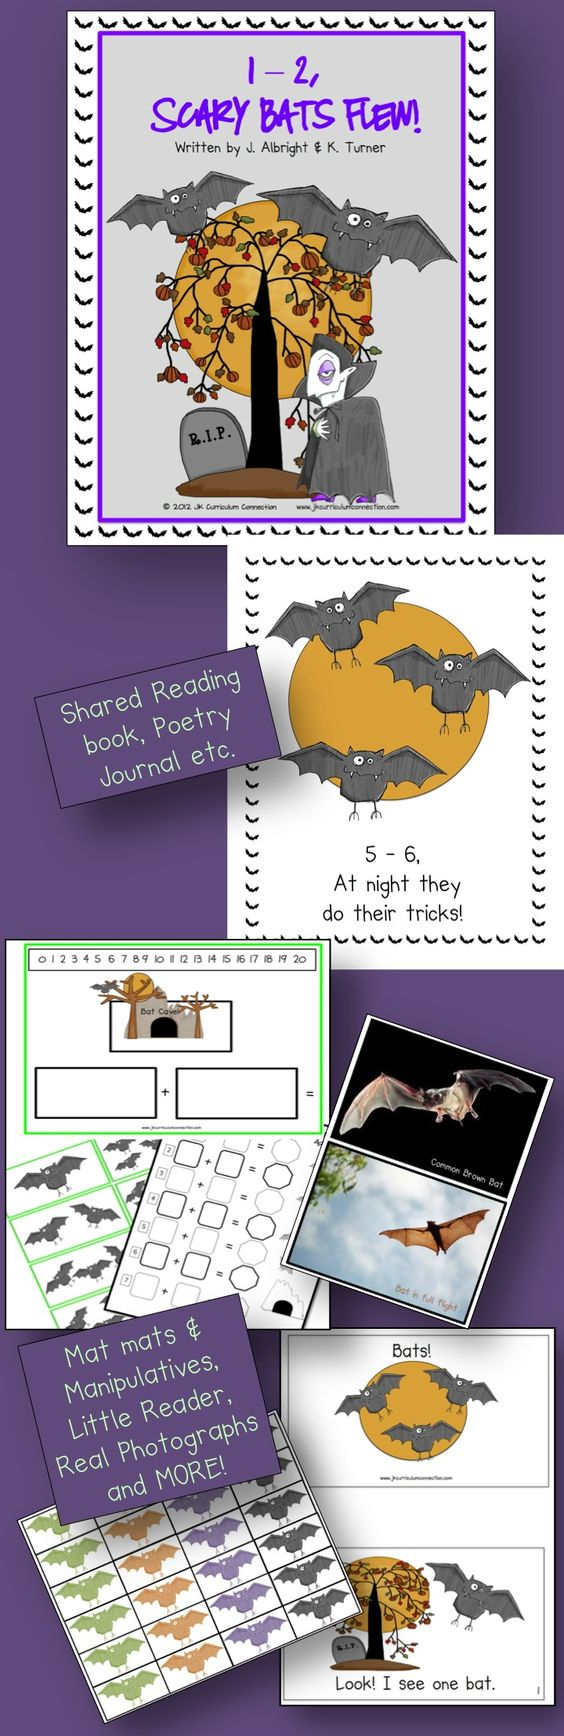 This poem is about the nighttime excitement of flying bats. It has the surprise ending when the bats turn into vampires! Two Little Readers and a Math Center activity is included.